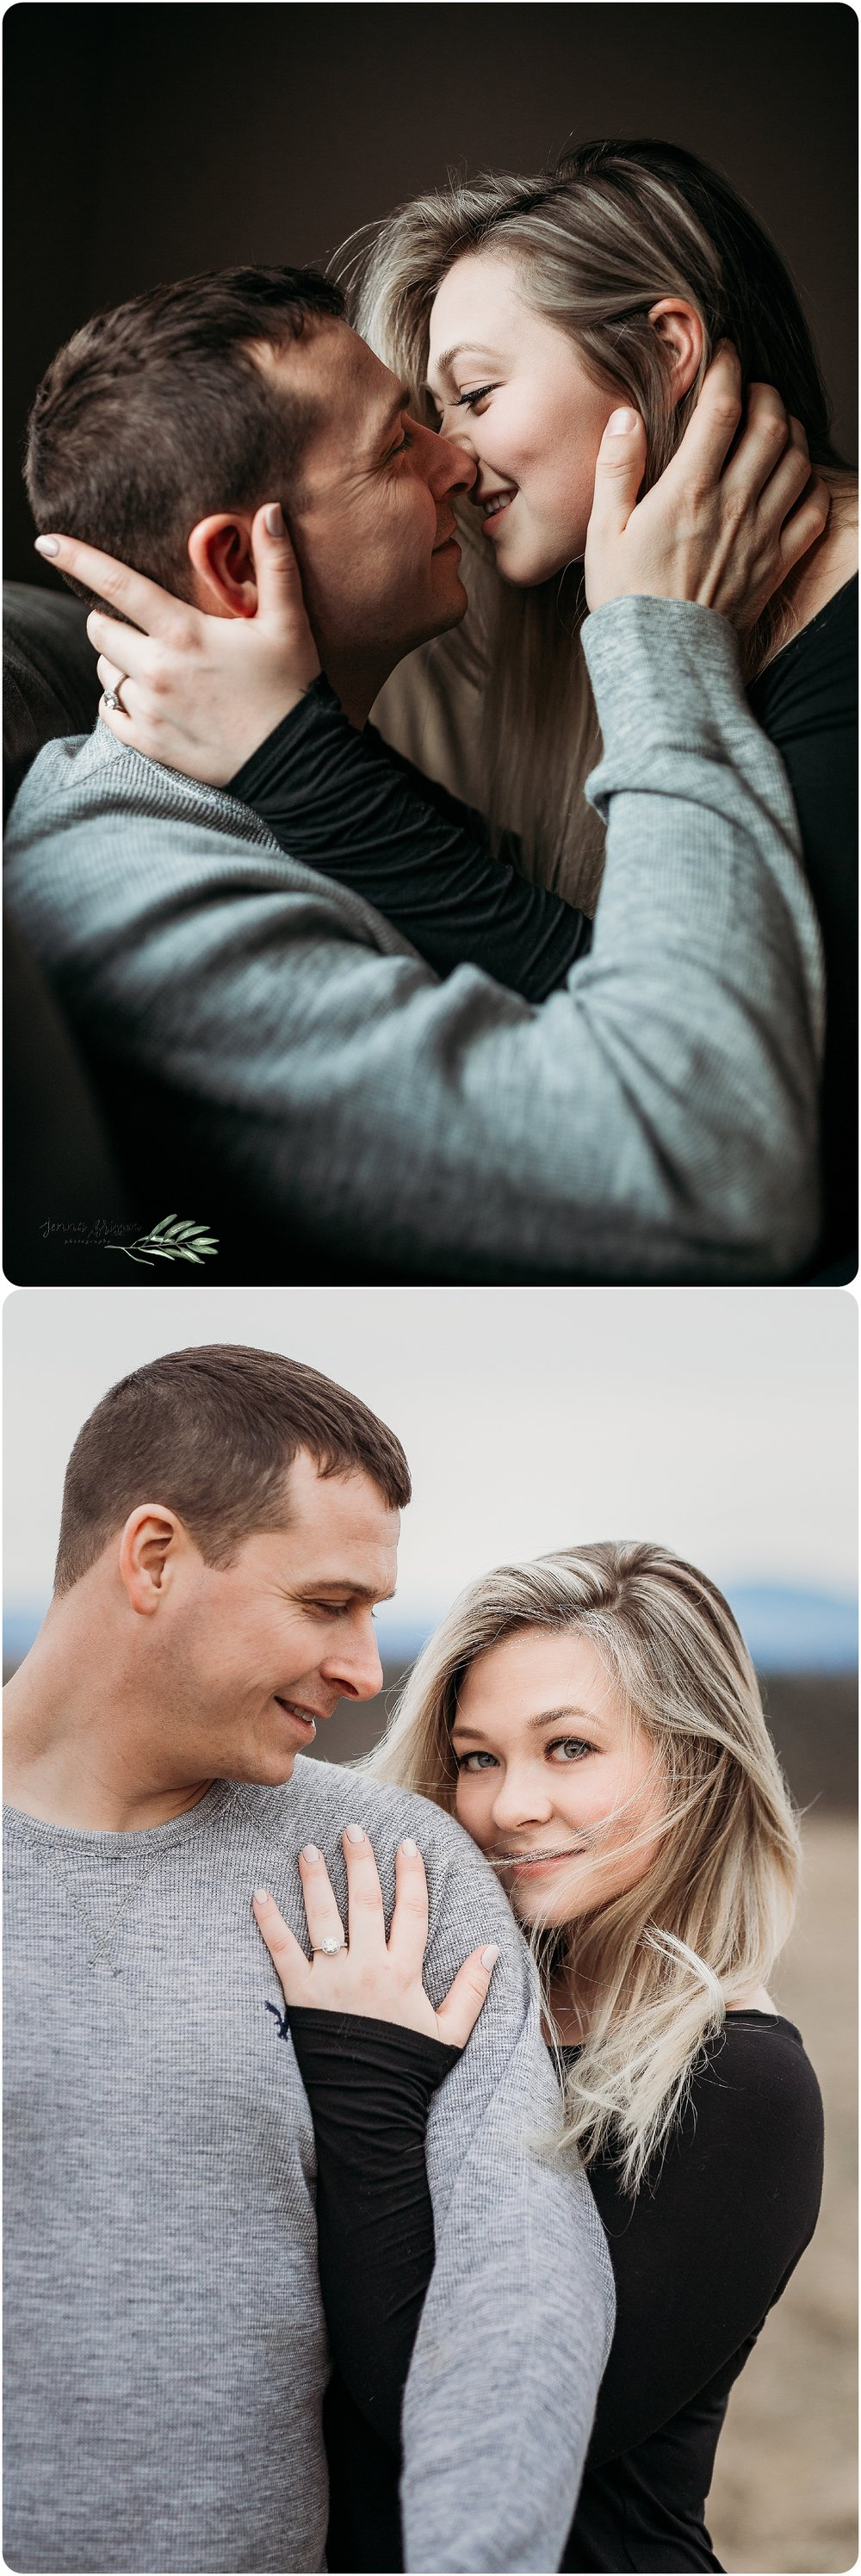 Engagement Session - Burlington, Vermont - Jenna Brisson Photography - Vermont Wedding Photography